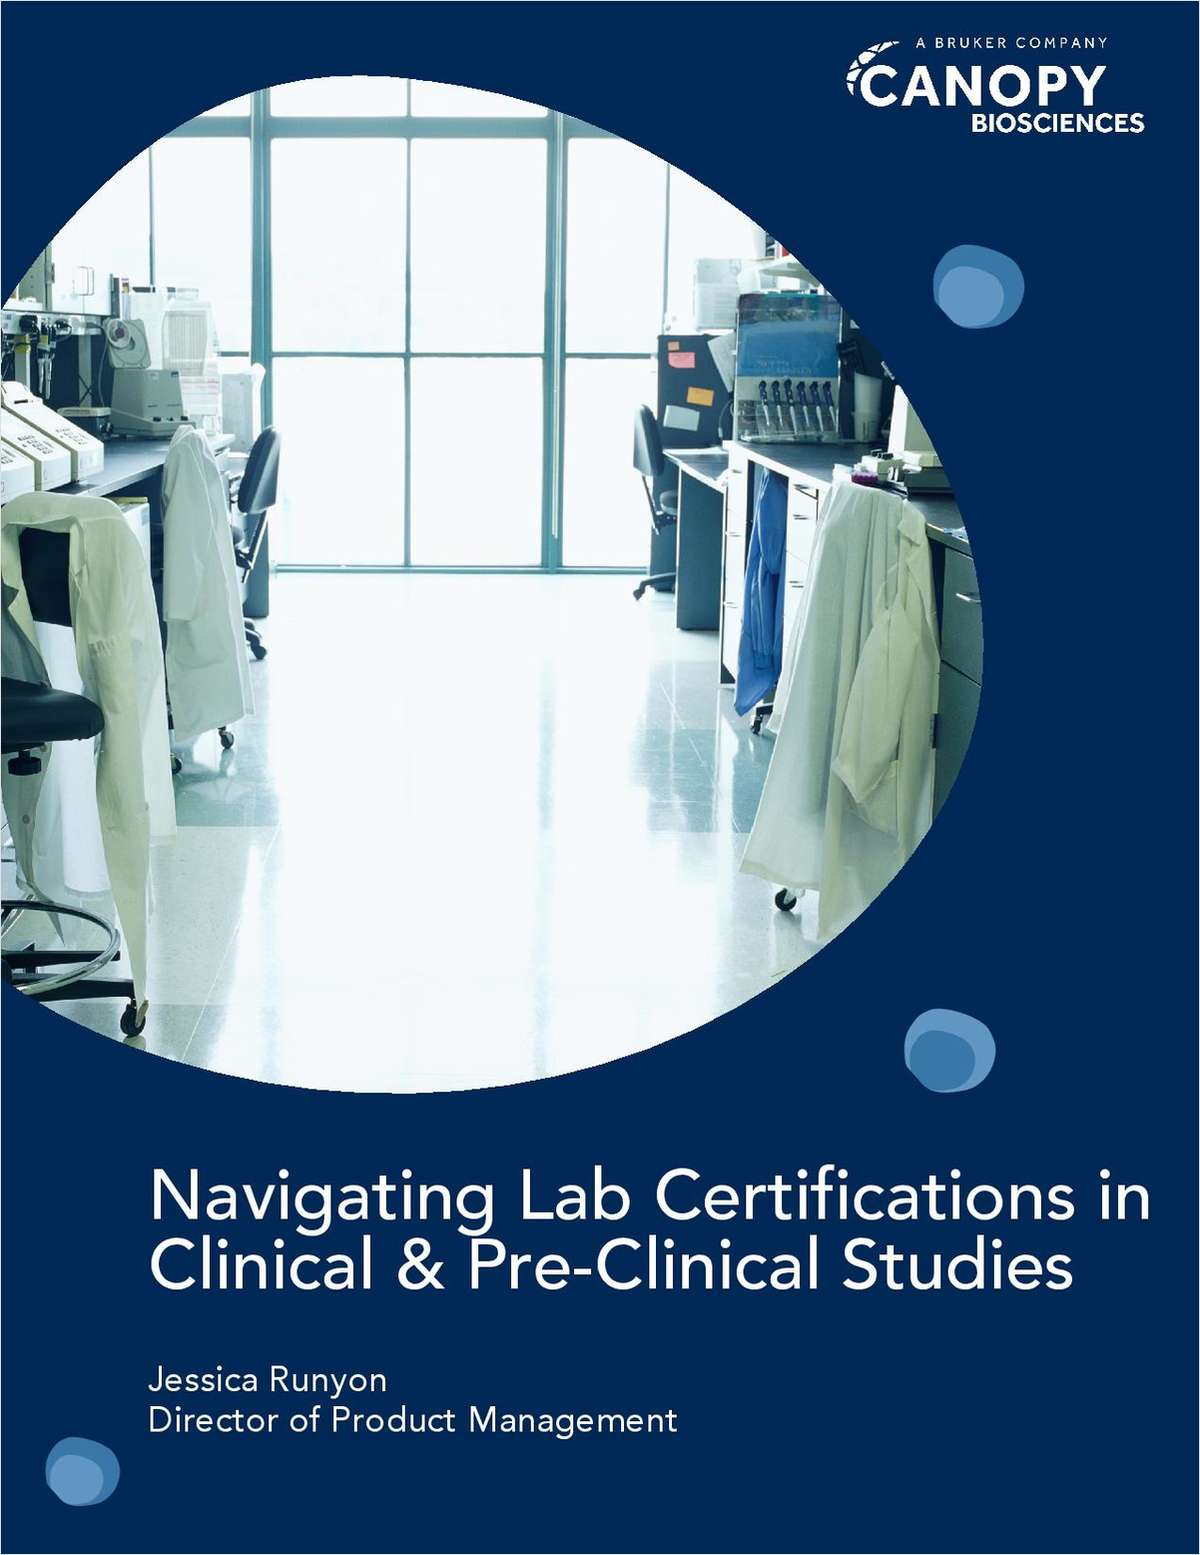 Navigating Lab Certifications in Clinical and Pre-Clinical Studies